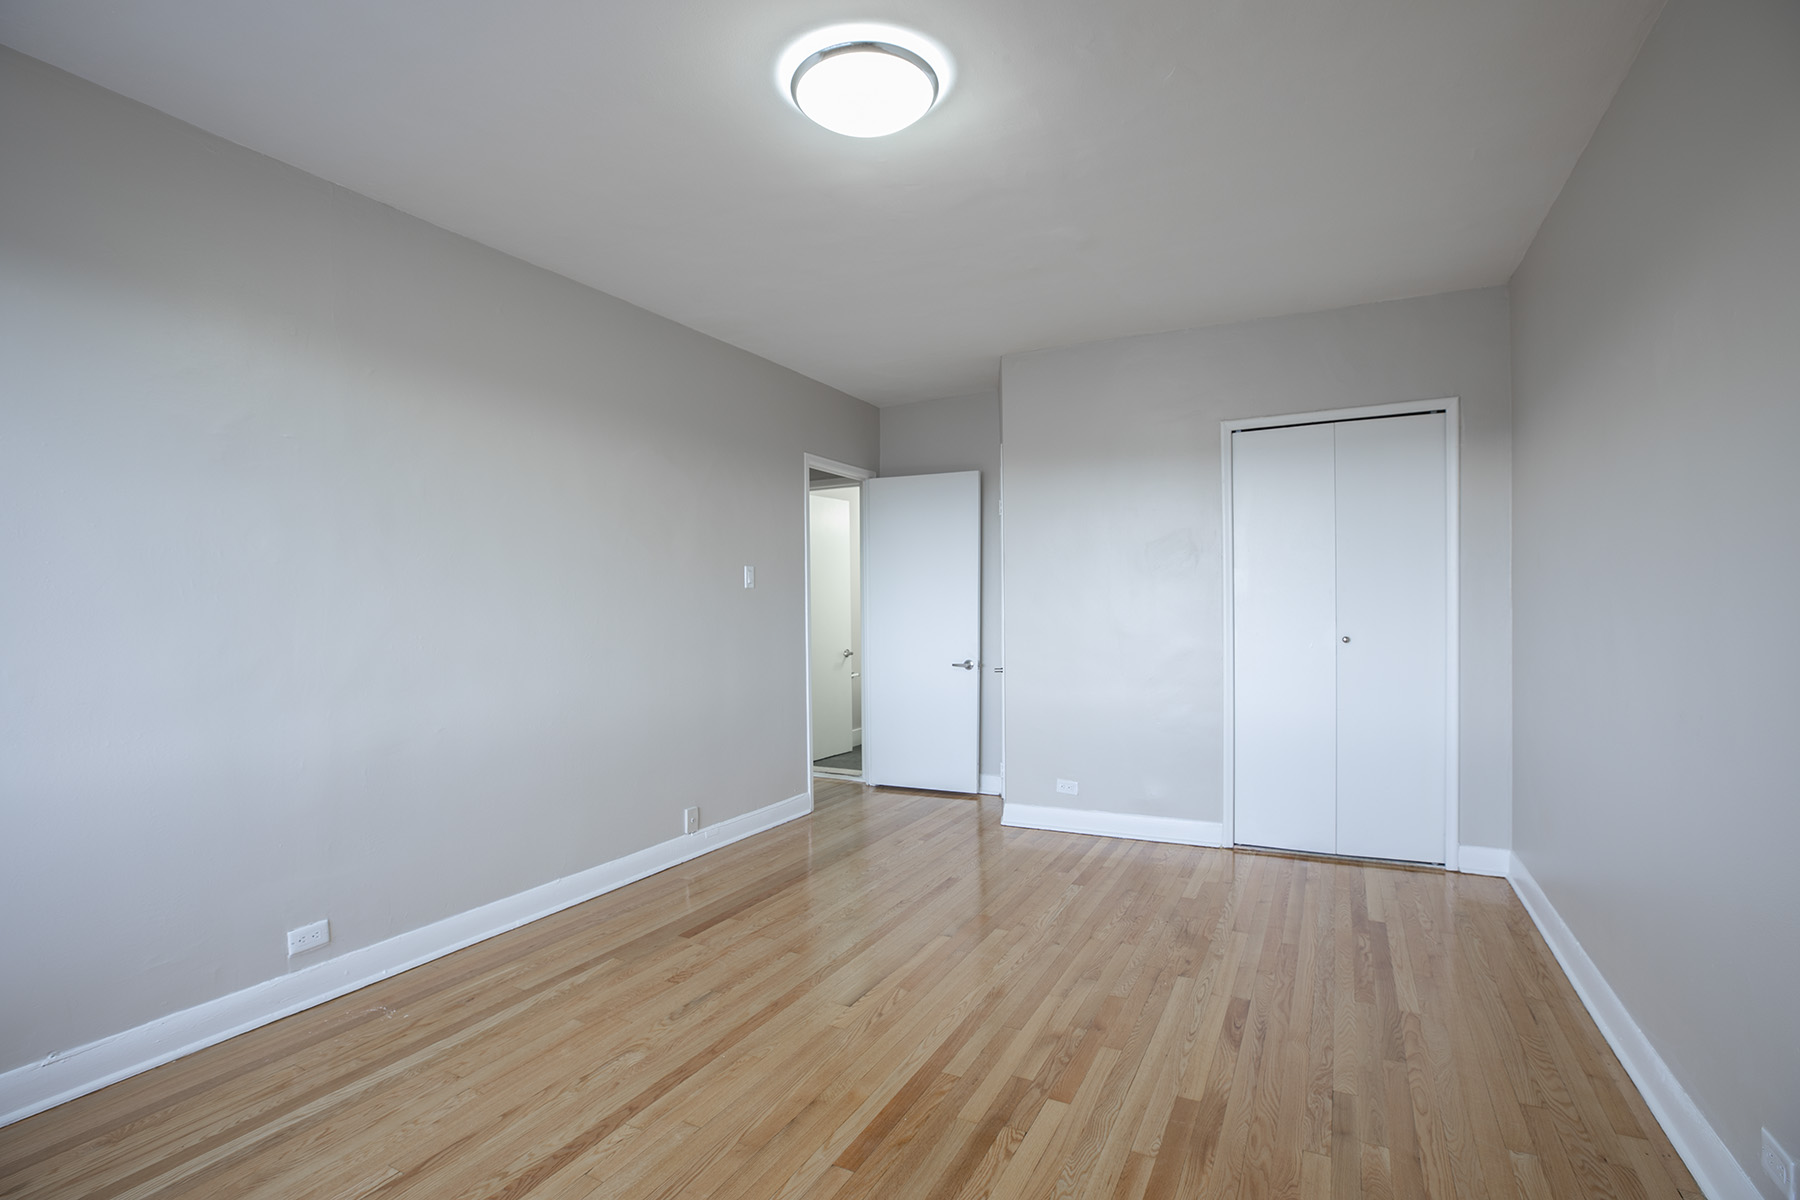 2 bedroom Apartments for rent in Montreal West at 6955 Fielding - Photo 13 - RentQuebecApartments – L401542